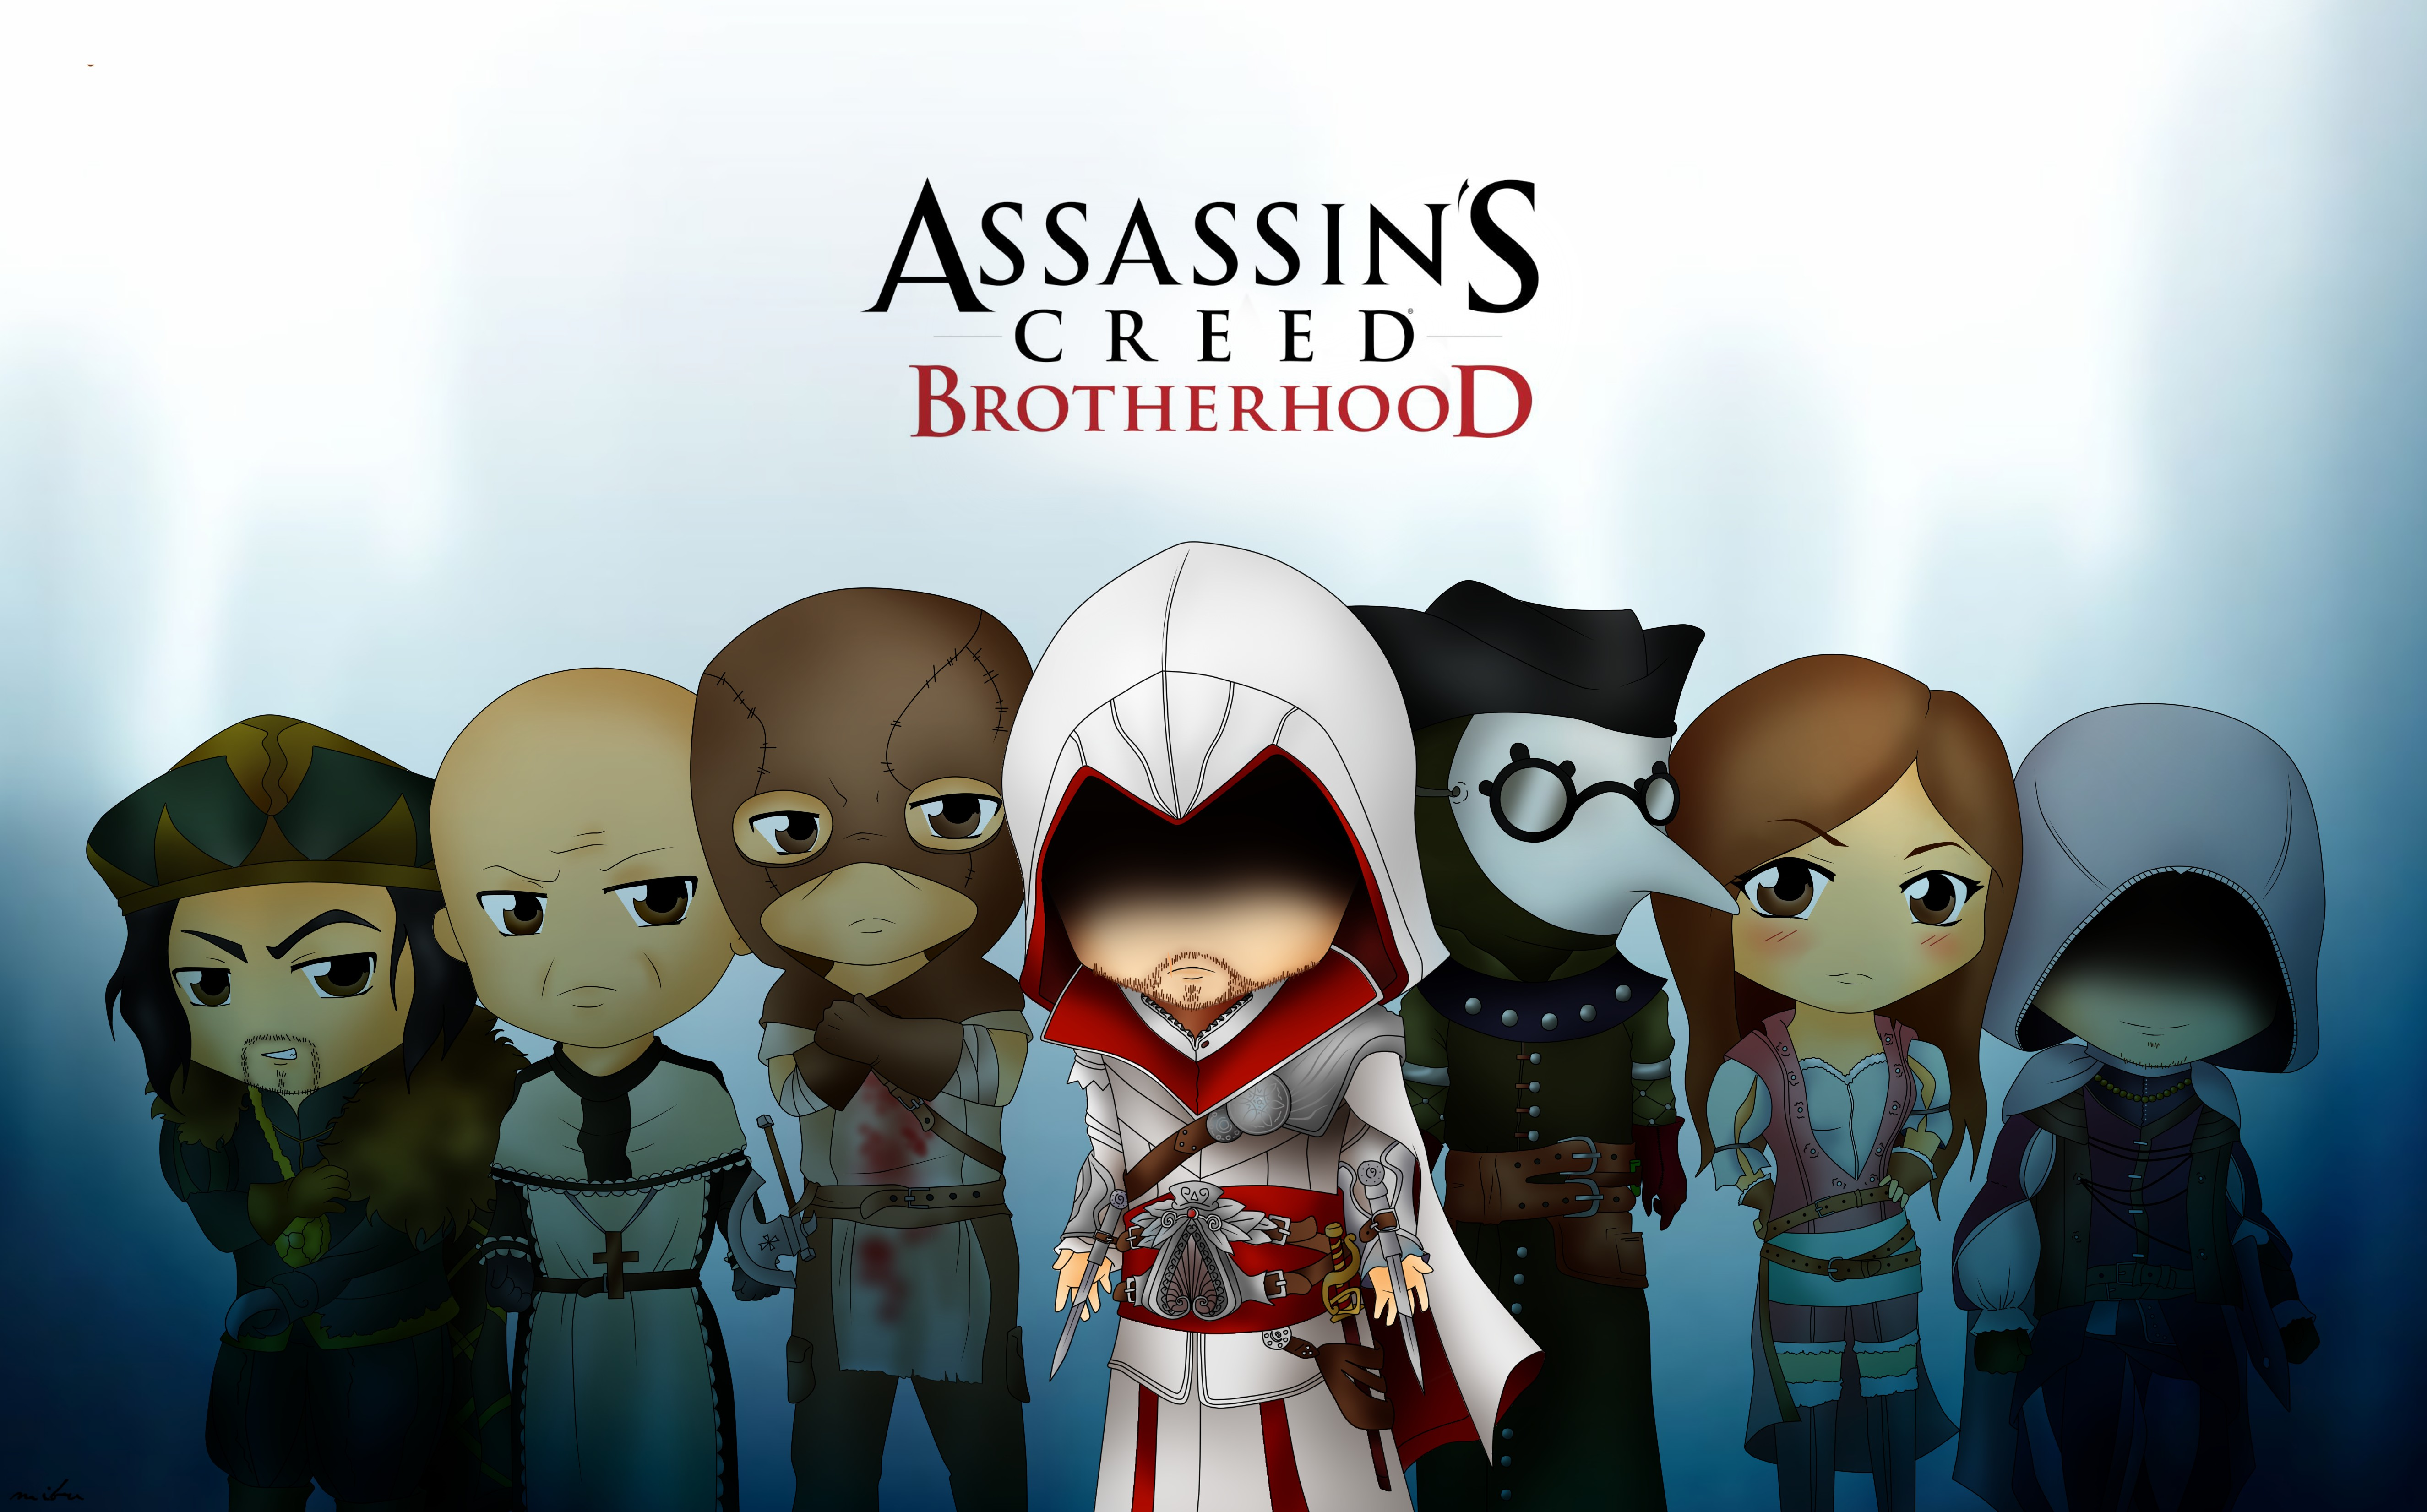 Assassins Creed Brotherhood Mobile Wallpaper  Zerochan